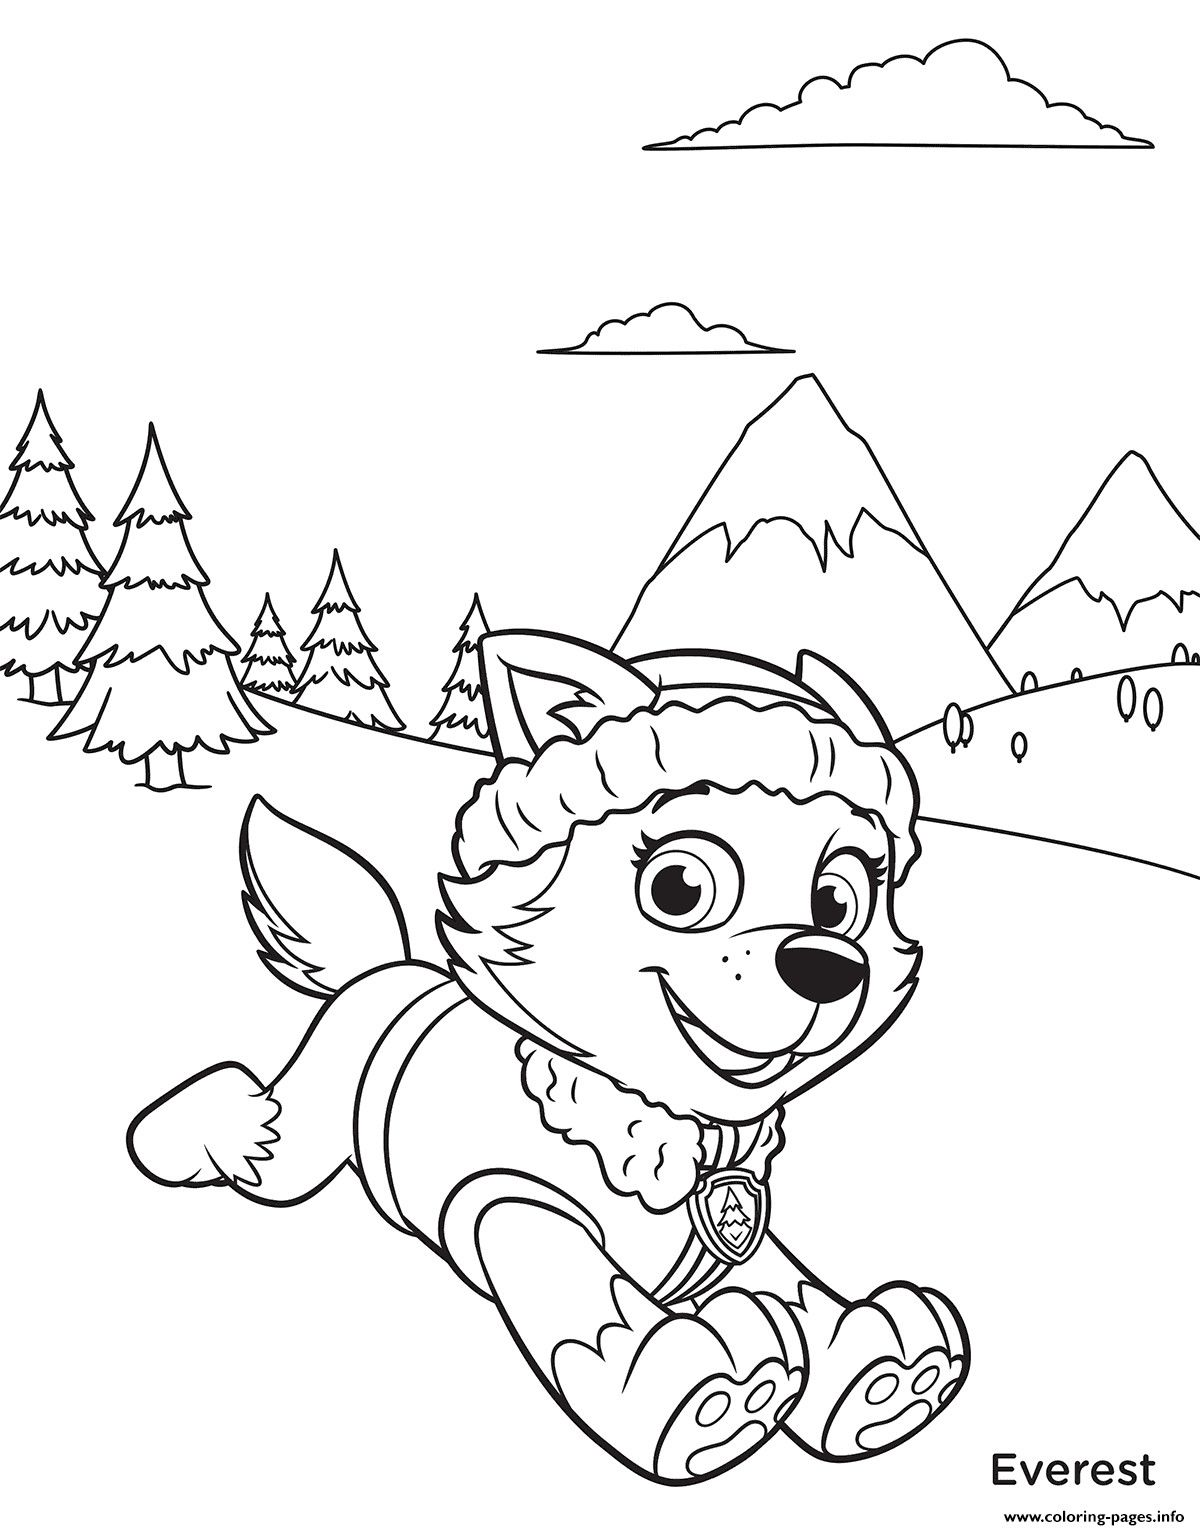 Paw Patrol Coloring Sheets Lovely Print Paw Patrol Everest